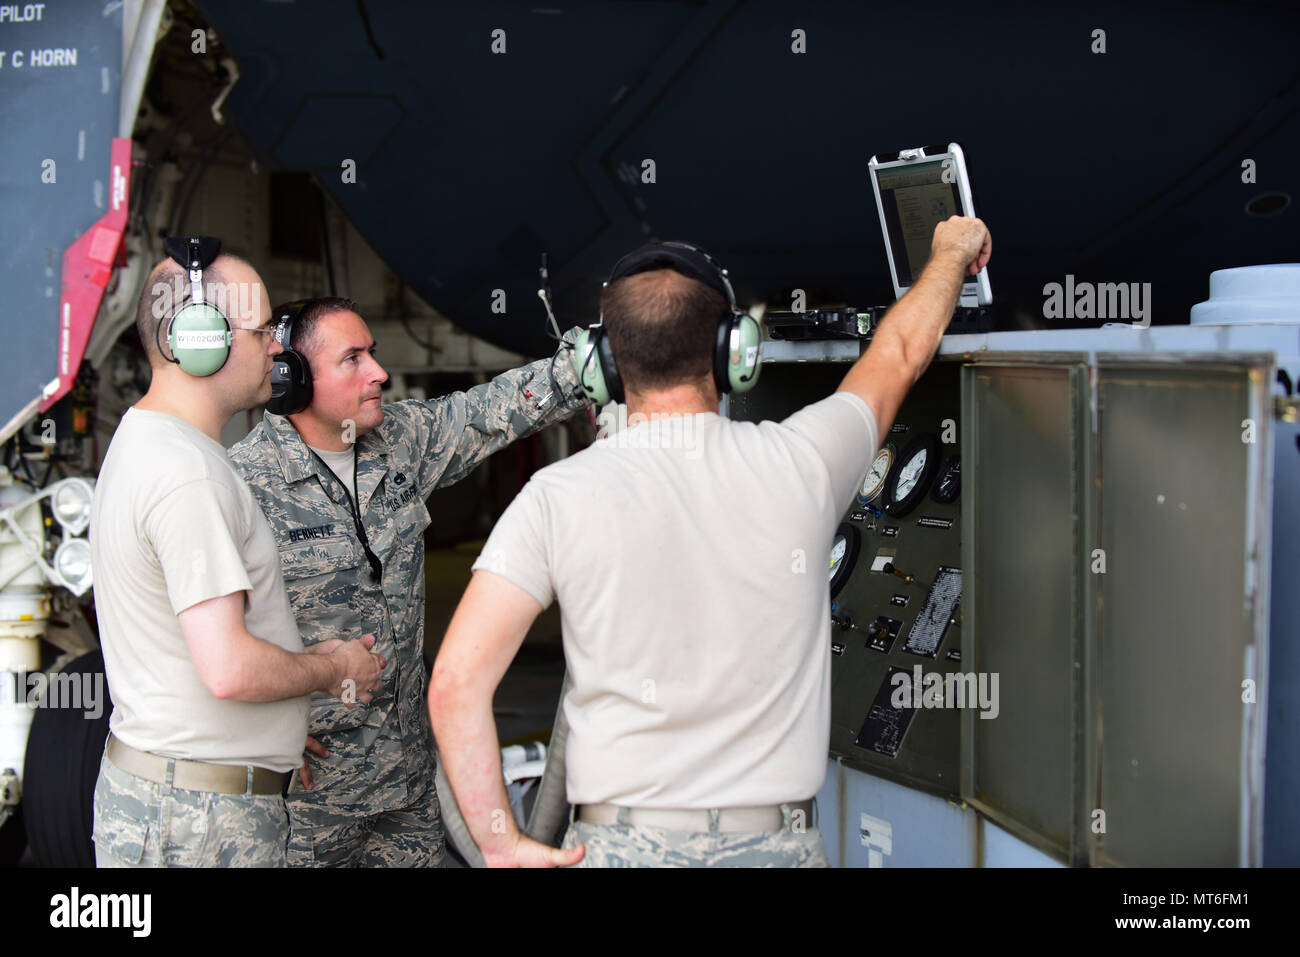 Aircraft electrical and environmental system technicians with the 509th and 131st Aircraft Maintenance Squadrons set up a cabin pressure tester cart at Whiteman Air Force Base, Mo., July 27, 2017. Cabin pressurization creates a safe and comfortable environment for the pilots when they fly missions at altitudes as high as 50,000 feet. (U.S. Air Force photo/Staff Sgt. Danielle Quilla) - Stock Image